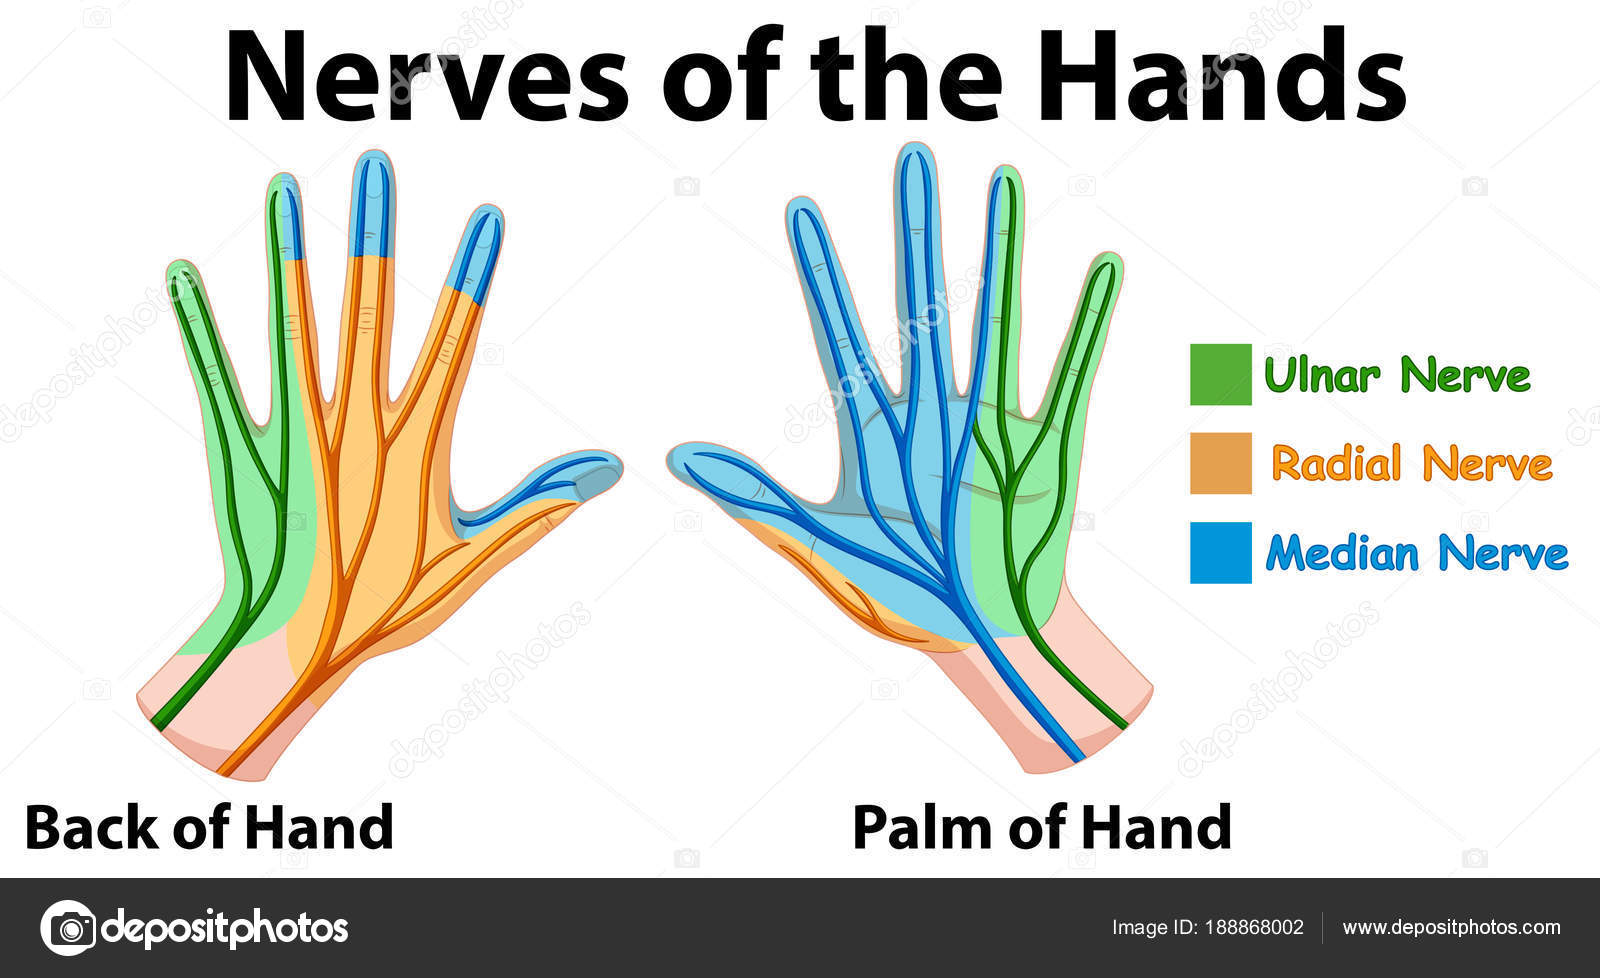 depositphotos_188868002 stock illustration diagram showing nerves of hands diagram showing nerves of hands stock vector © interactimages